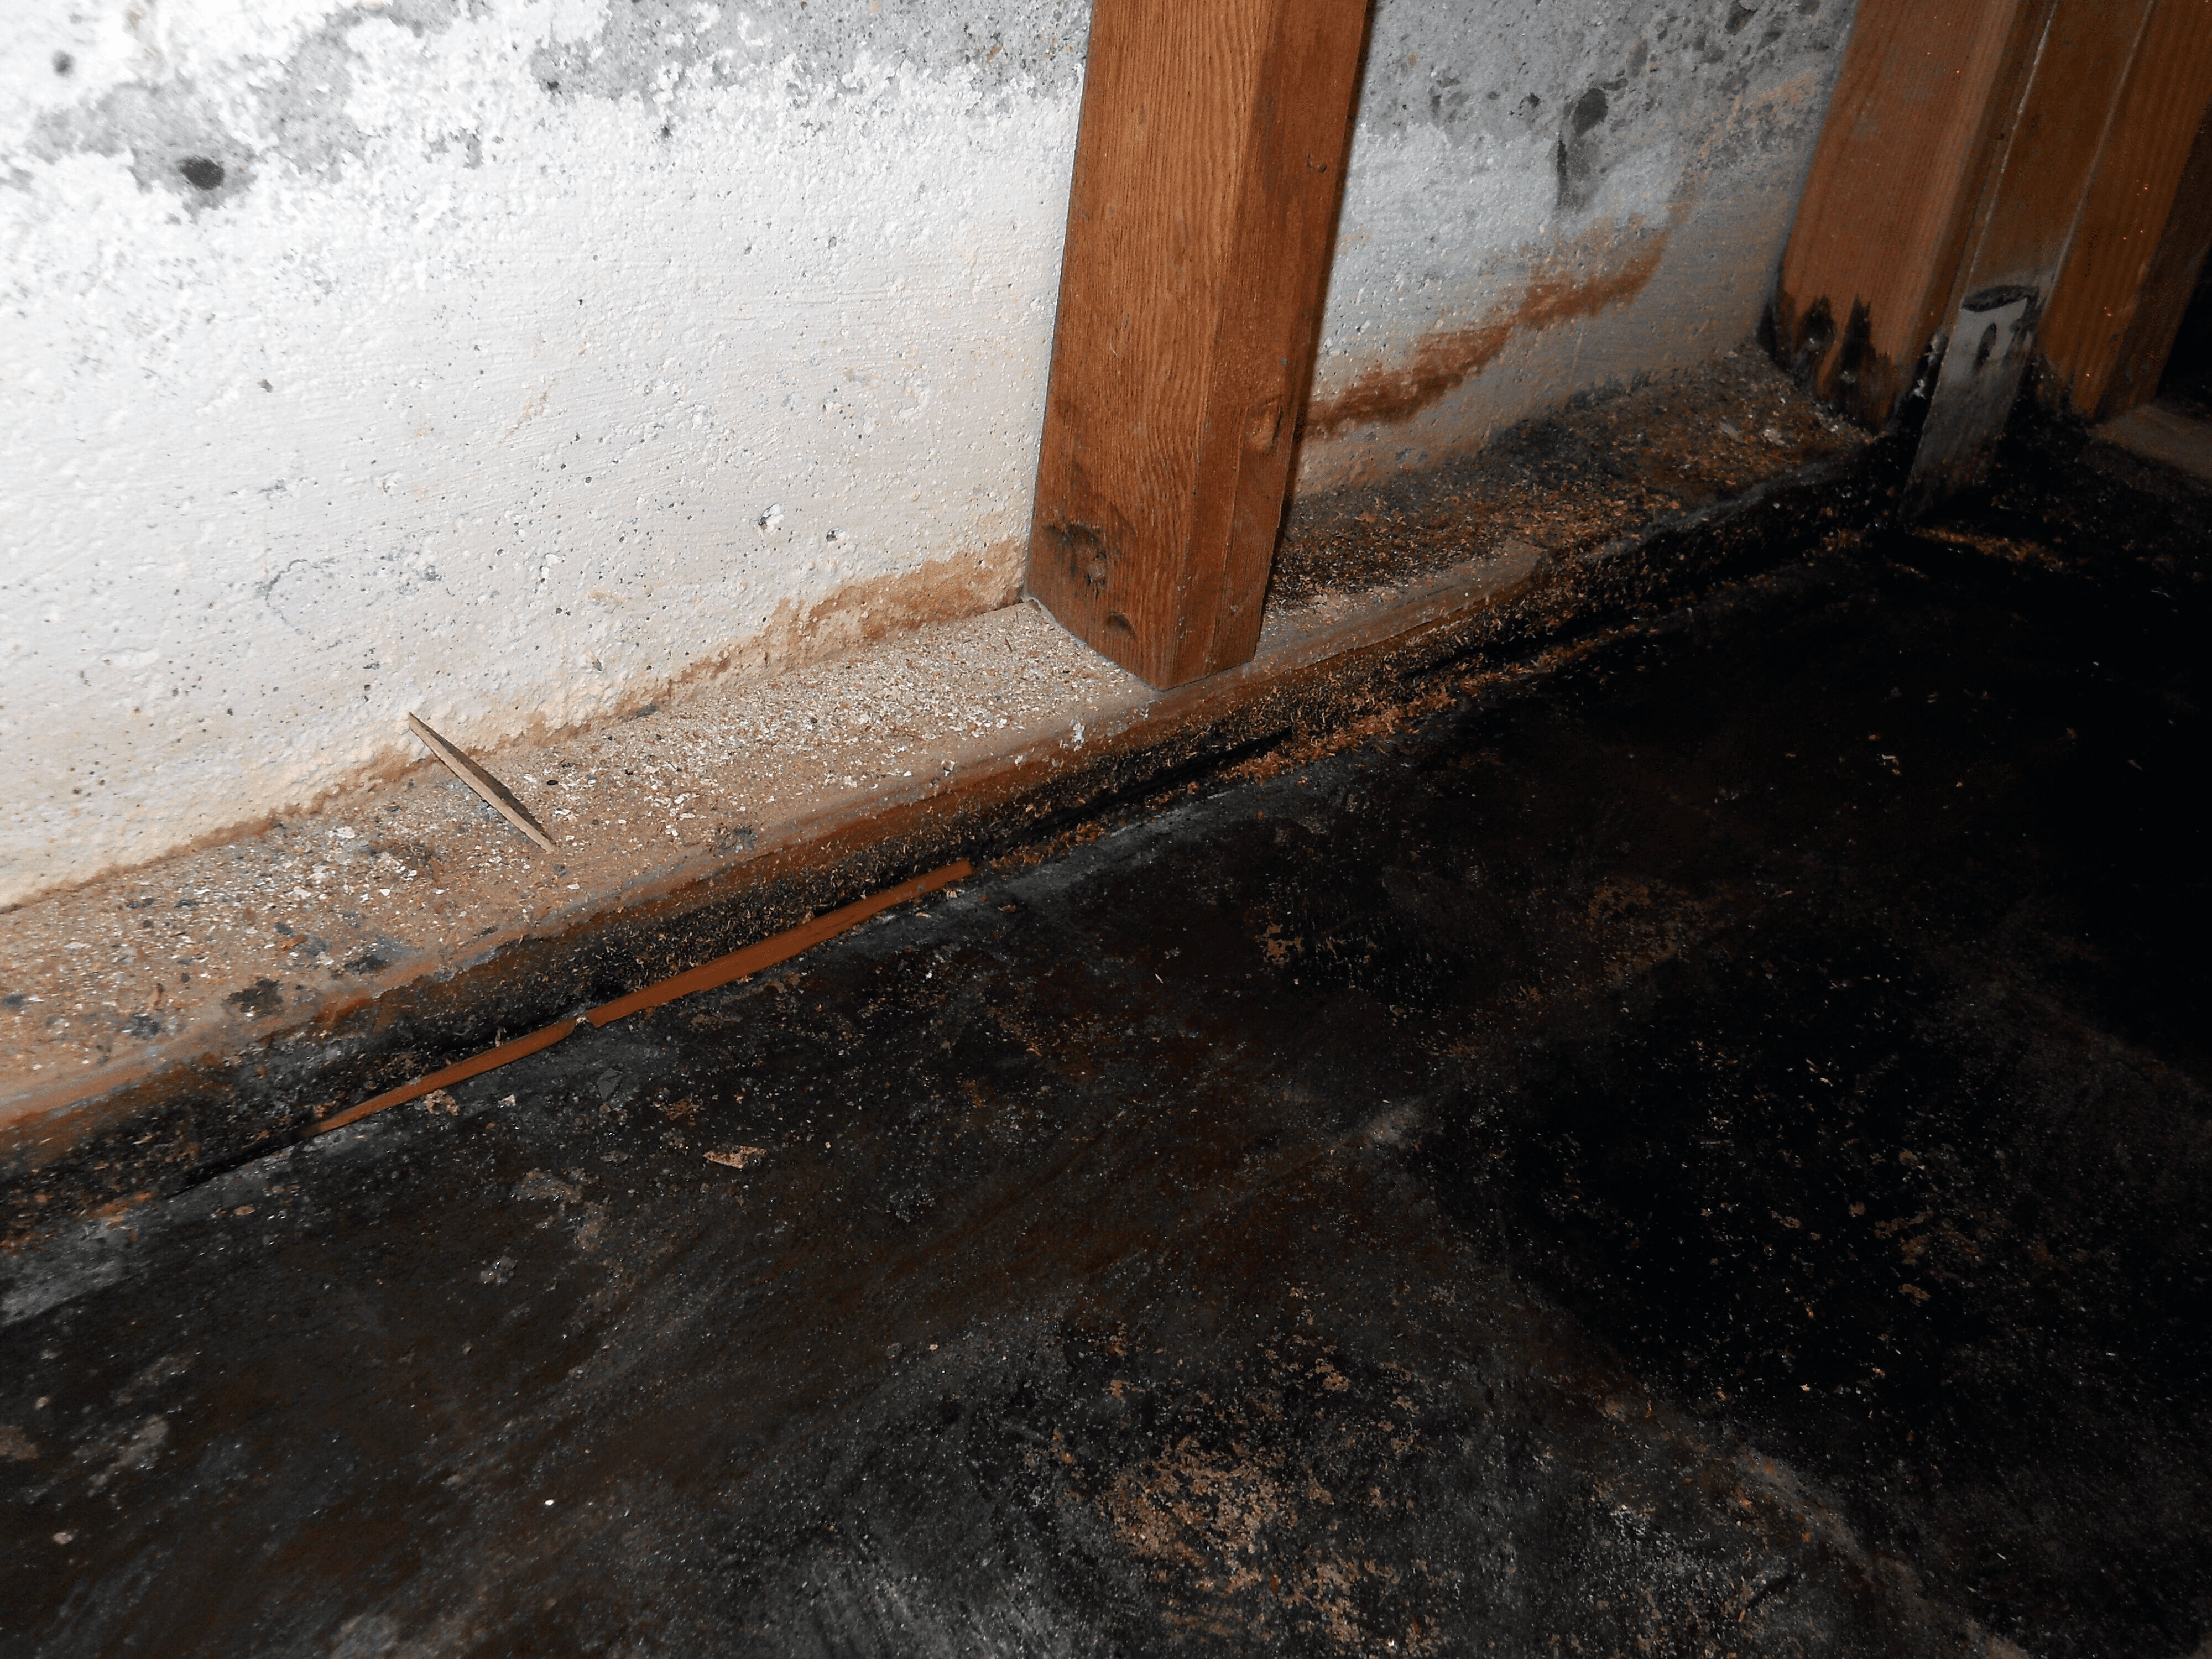 blackwater damage is the most dangerous type of water damage